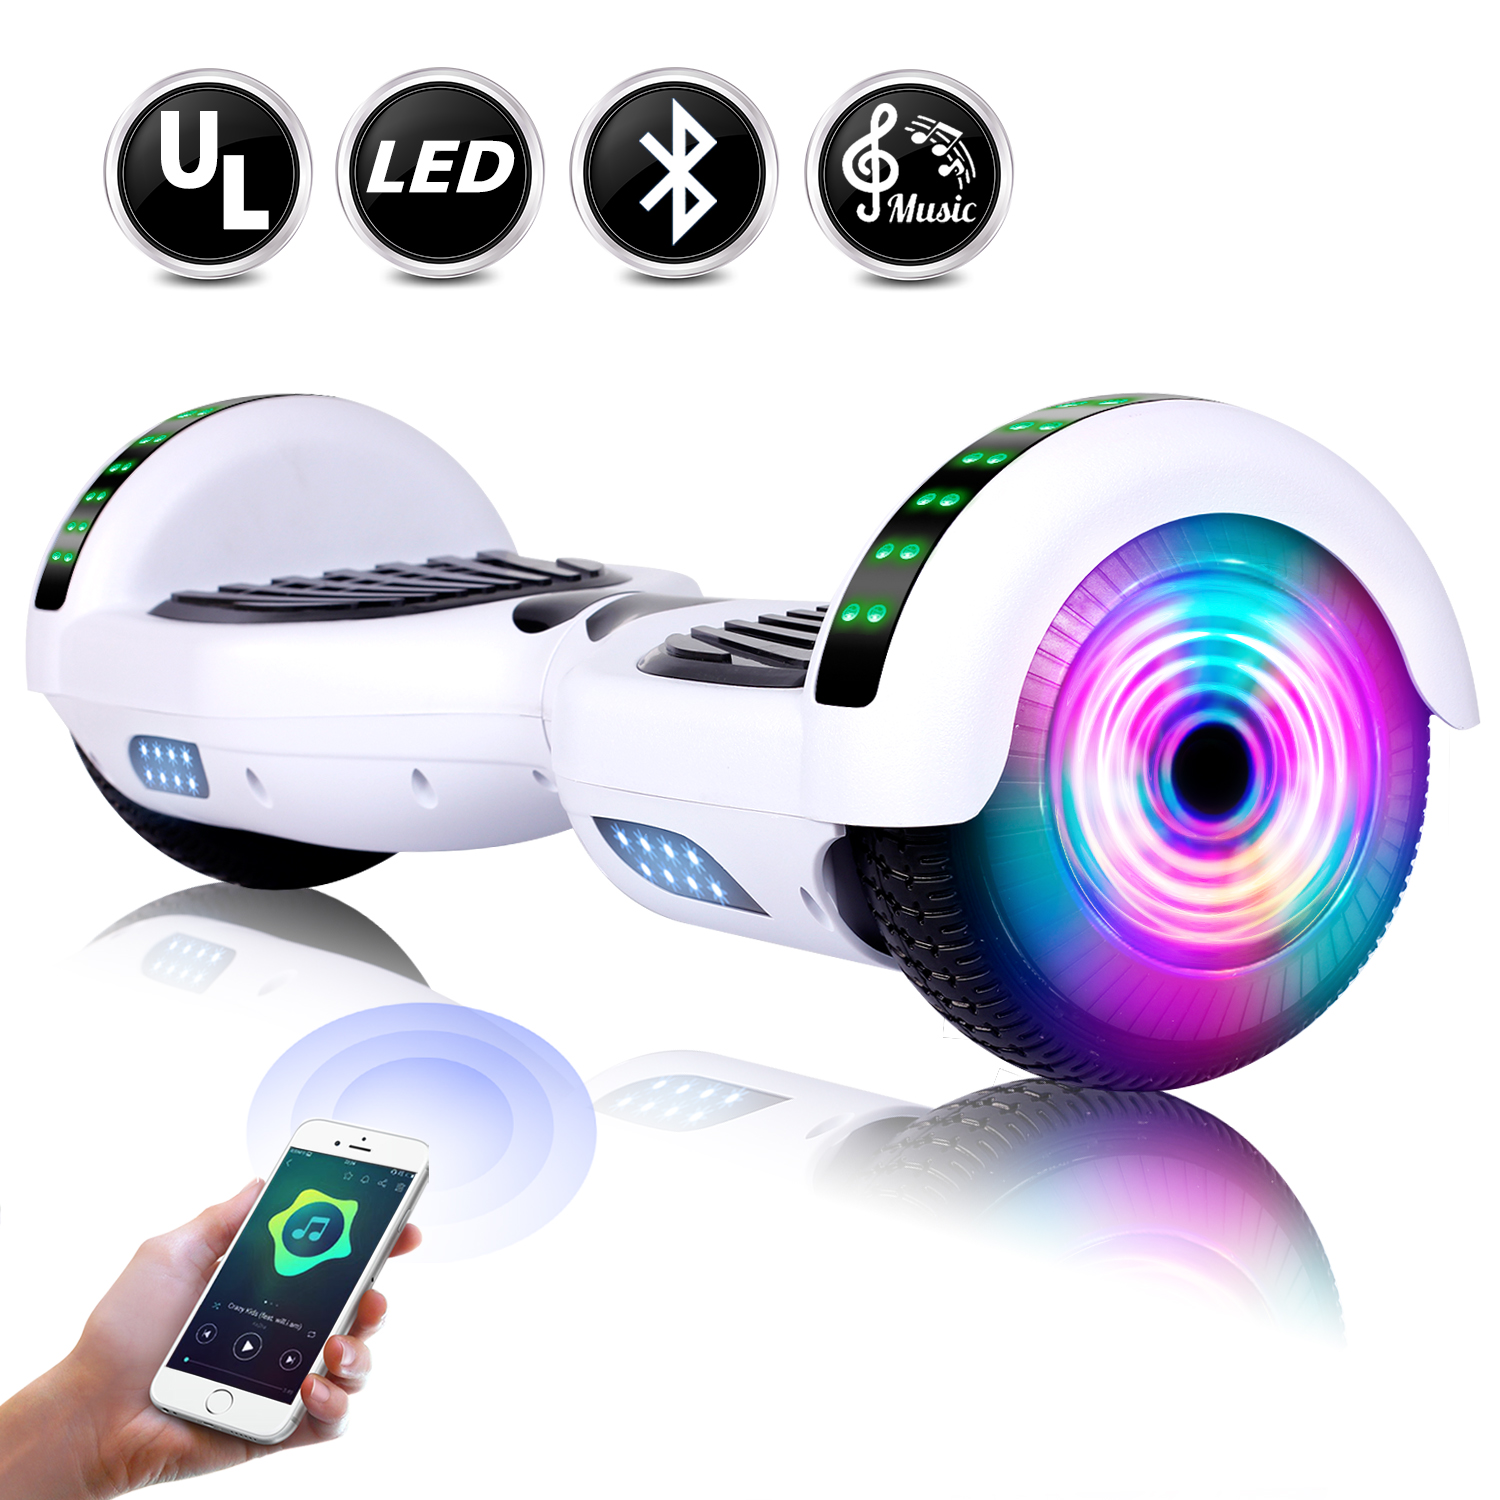 6-5-034-Bluetooth-Hoverboard-LED-Self-Balancing-Scooter-UL2272-no-Bag-US-Best-Gift thumbnail 8